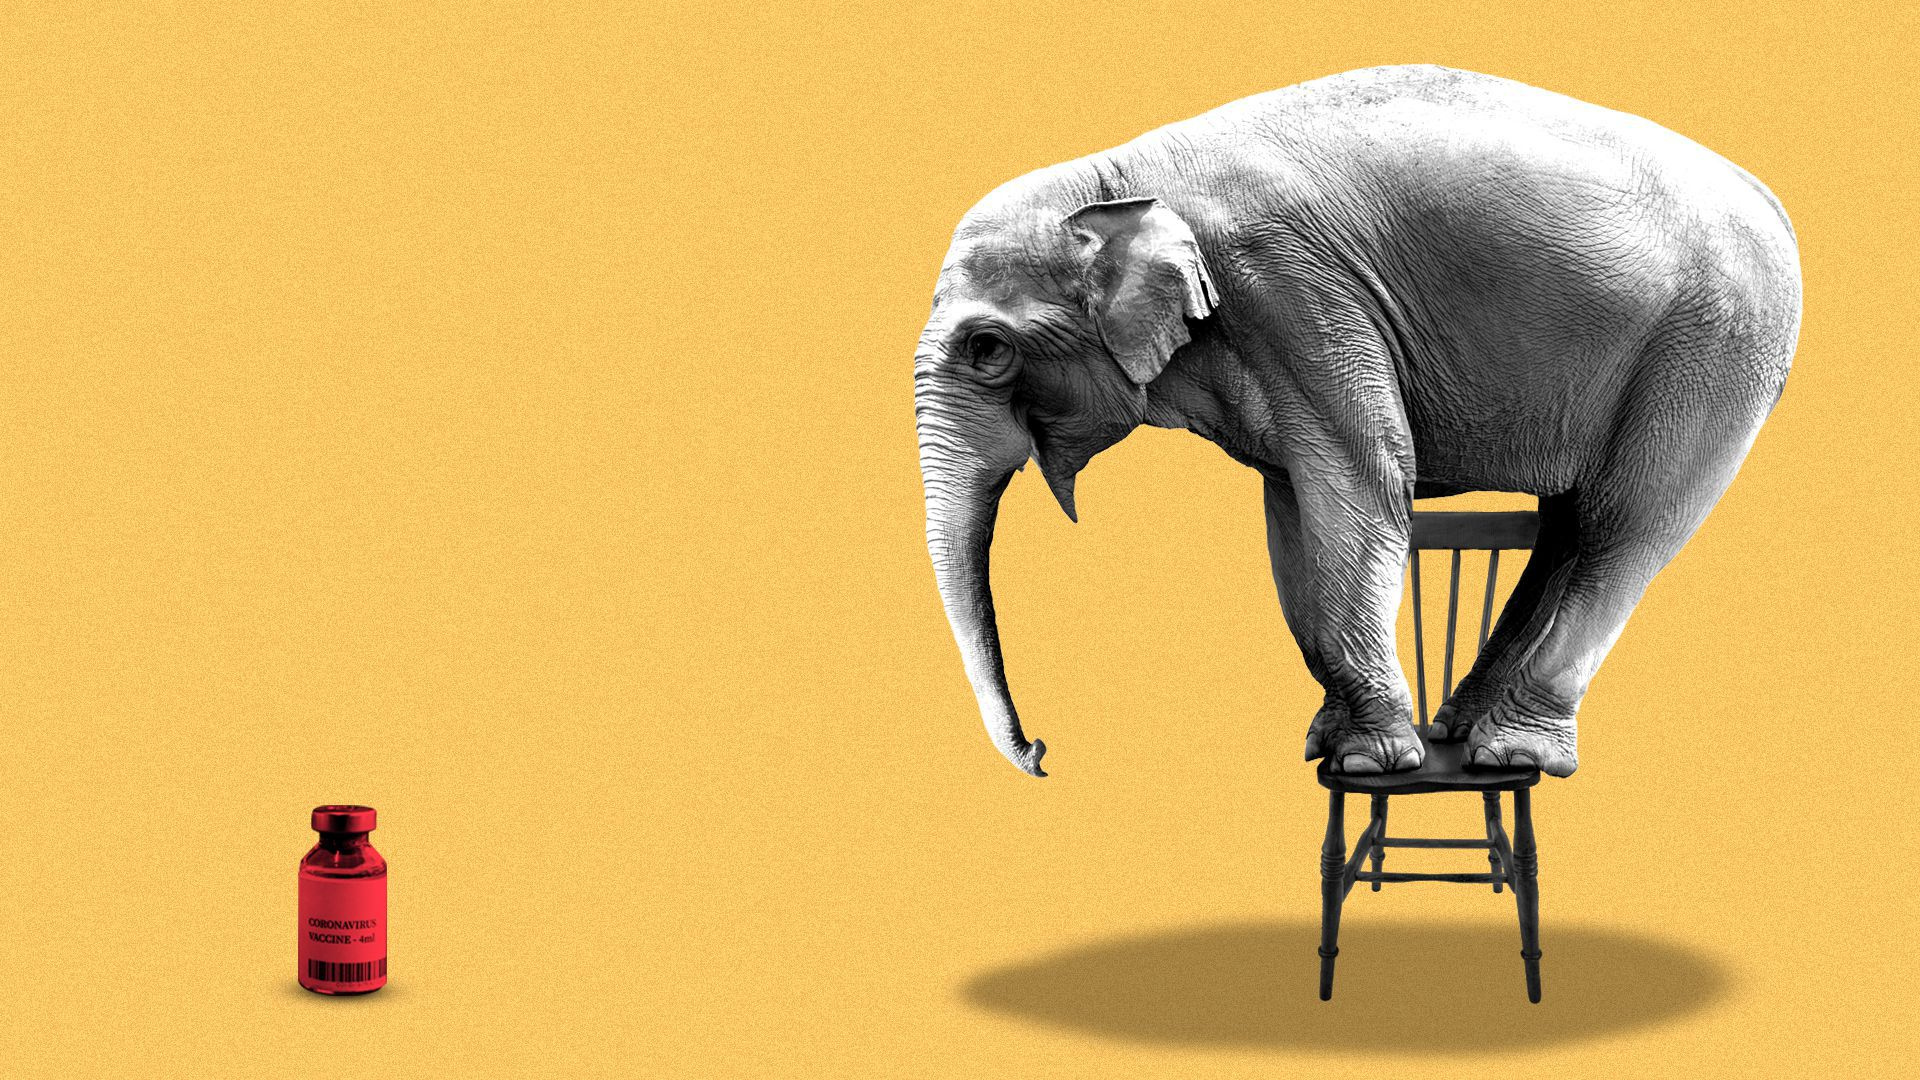 Illustration of an elephant standing on a chair because he is afraid of a vaccine vial.